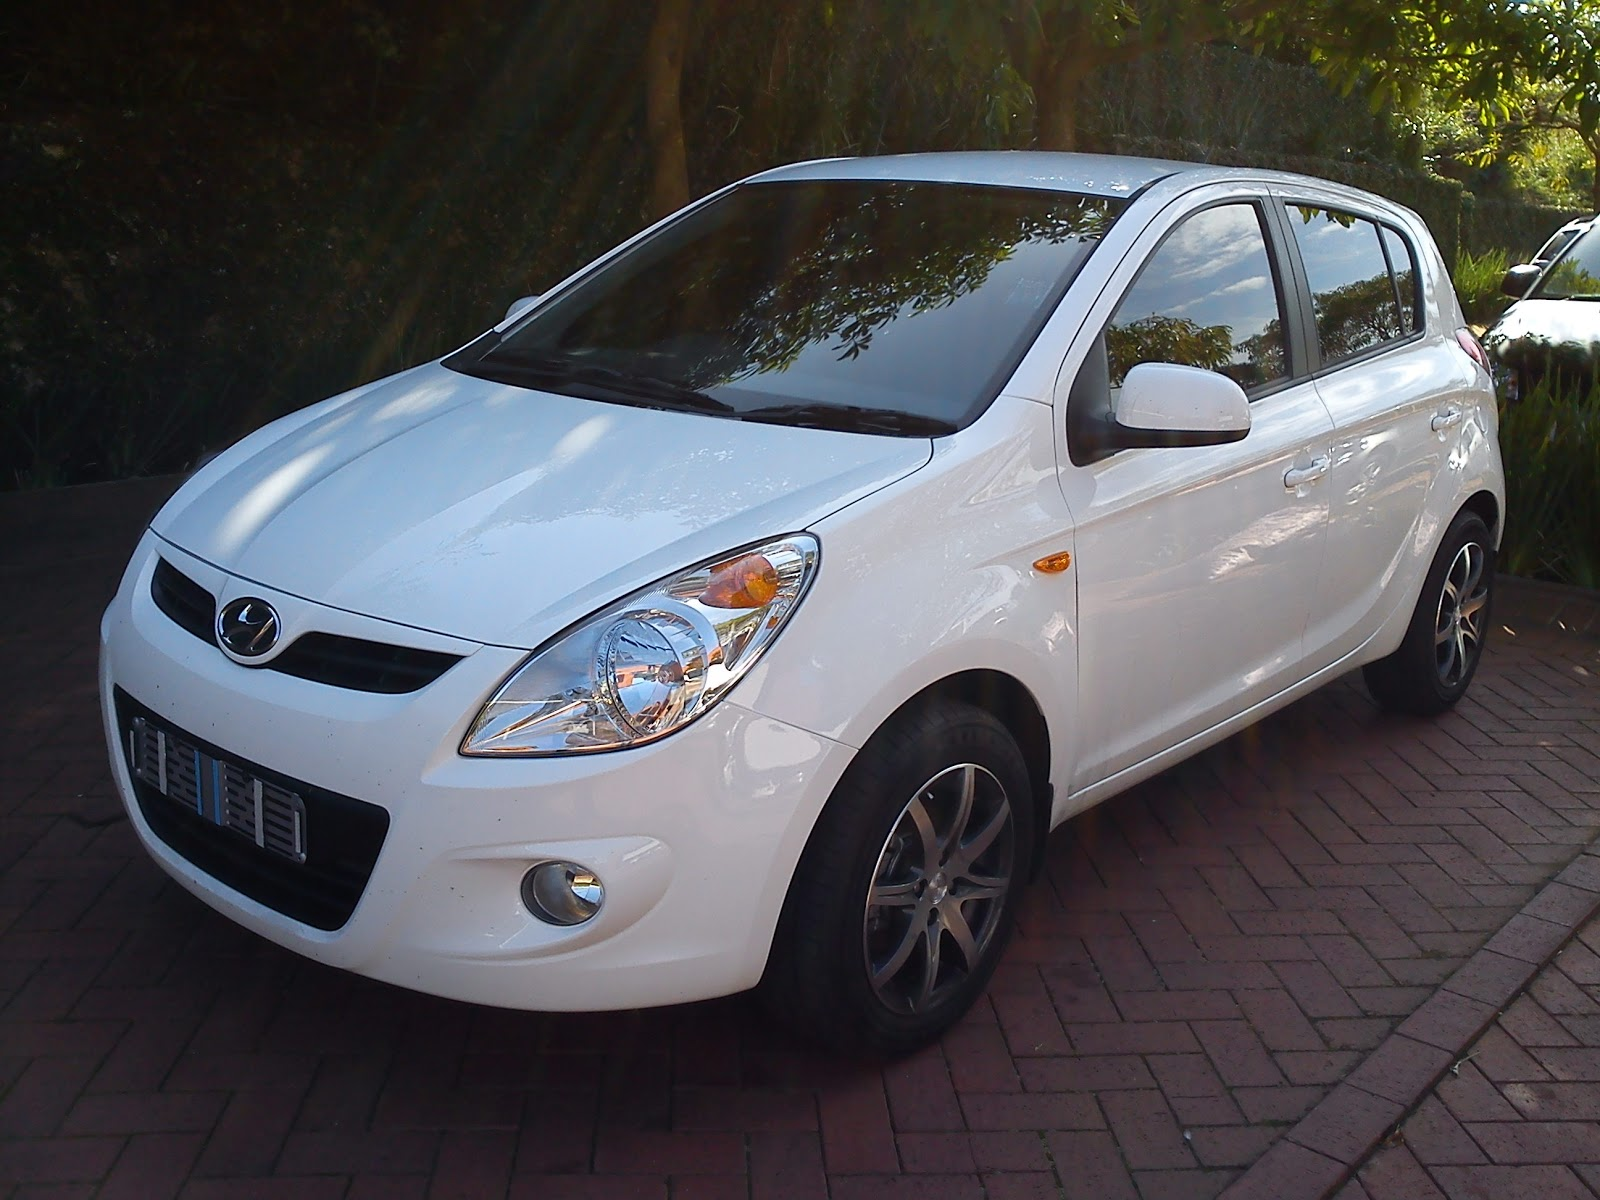 2011 hyundai i20 reviews specifications photos price - There Was One Word That Came To Me After Driving The Hyundai I20 1 6 Brilliant If I Was Told To Just Write One Word For This Review That Is The Word I D